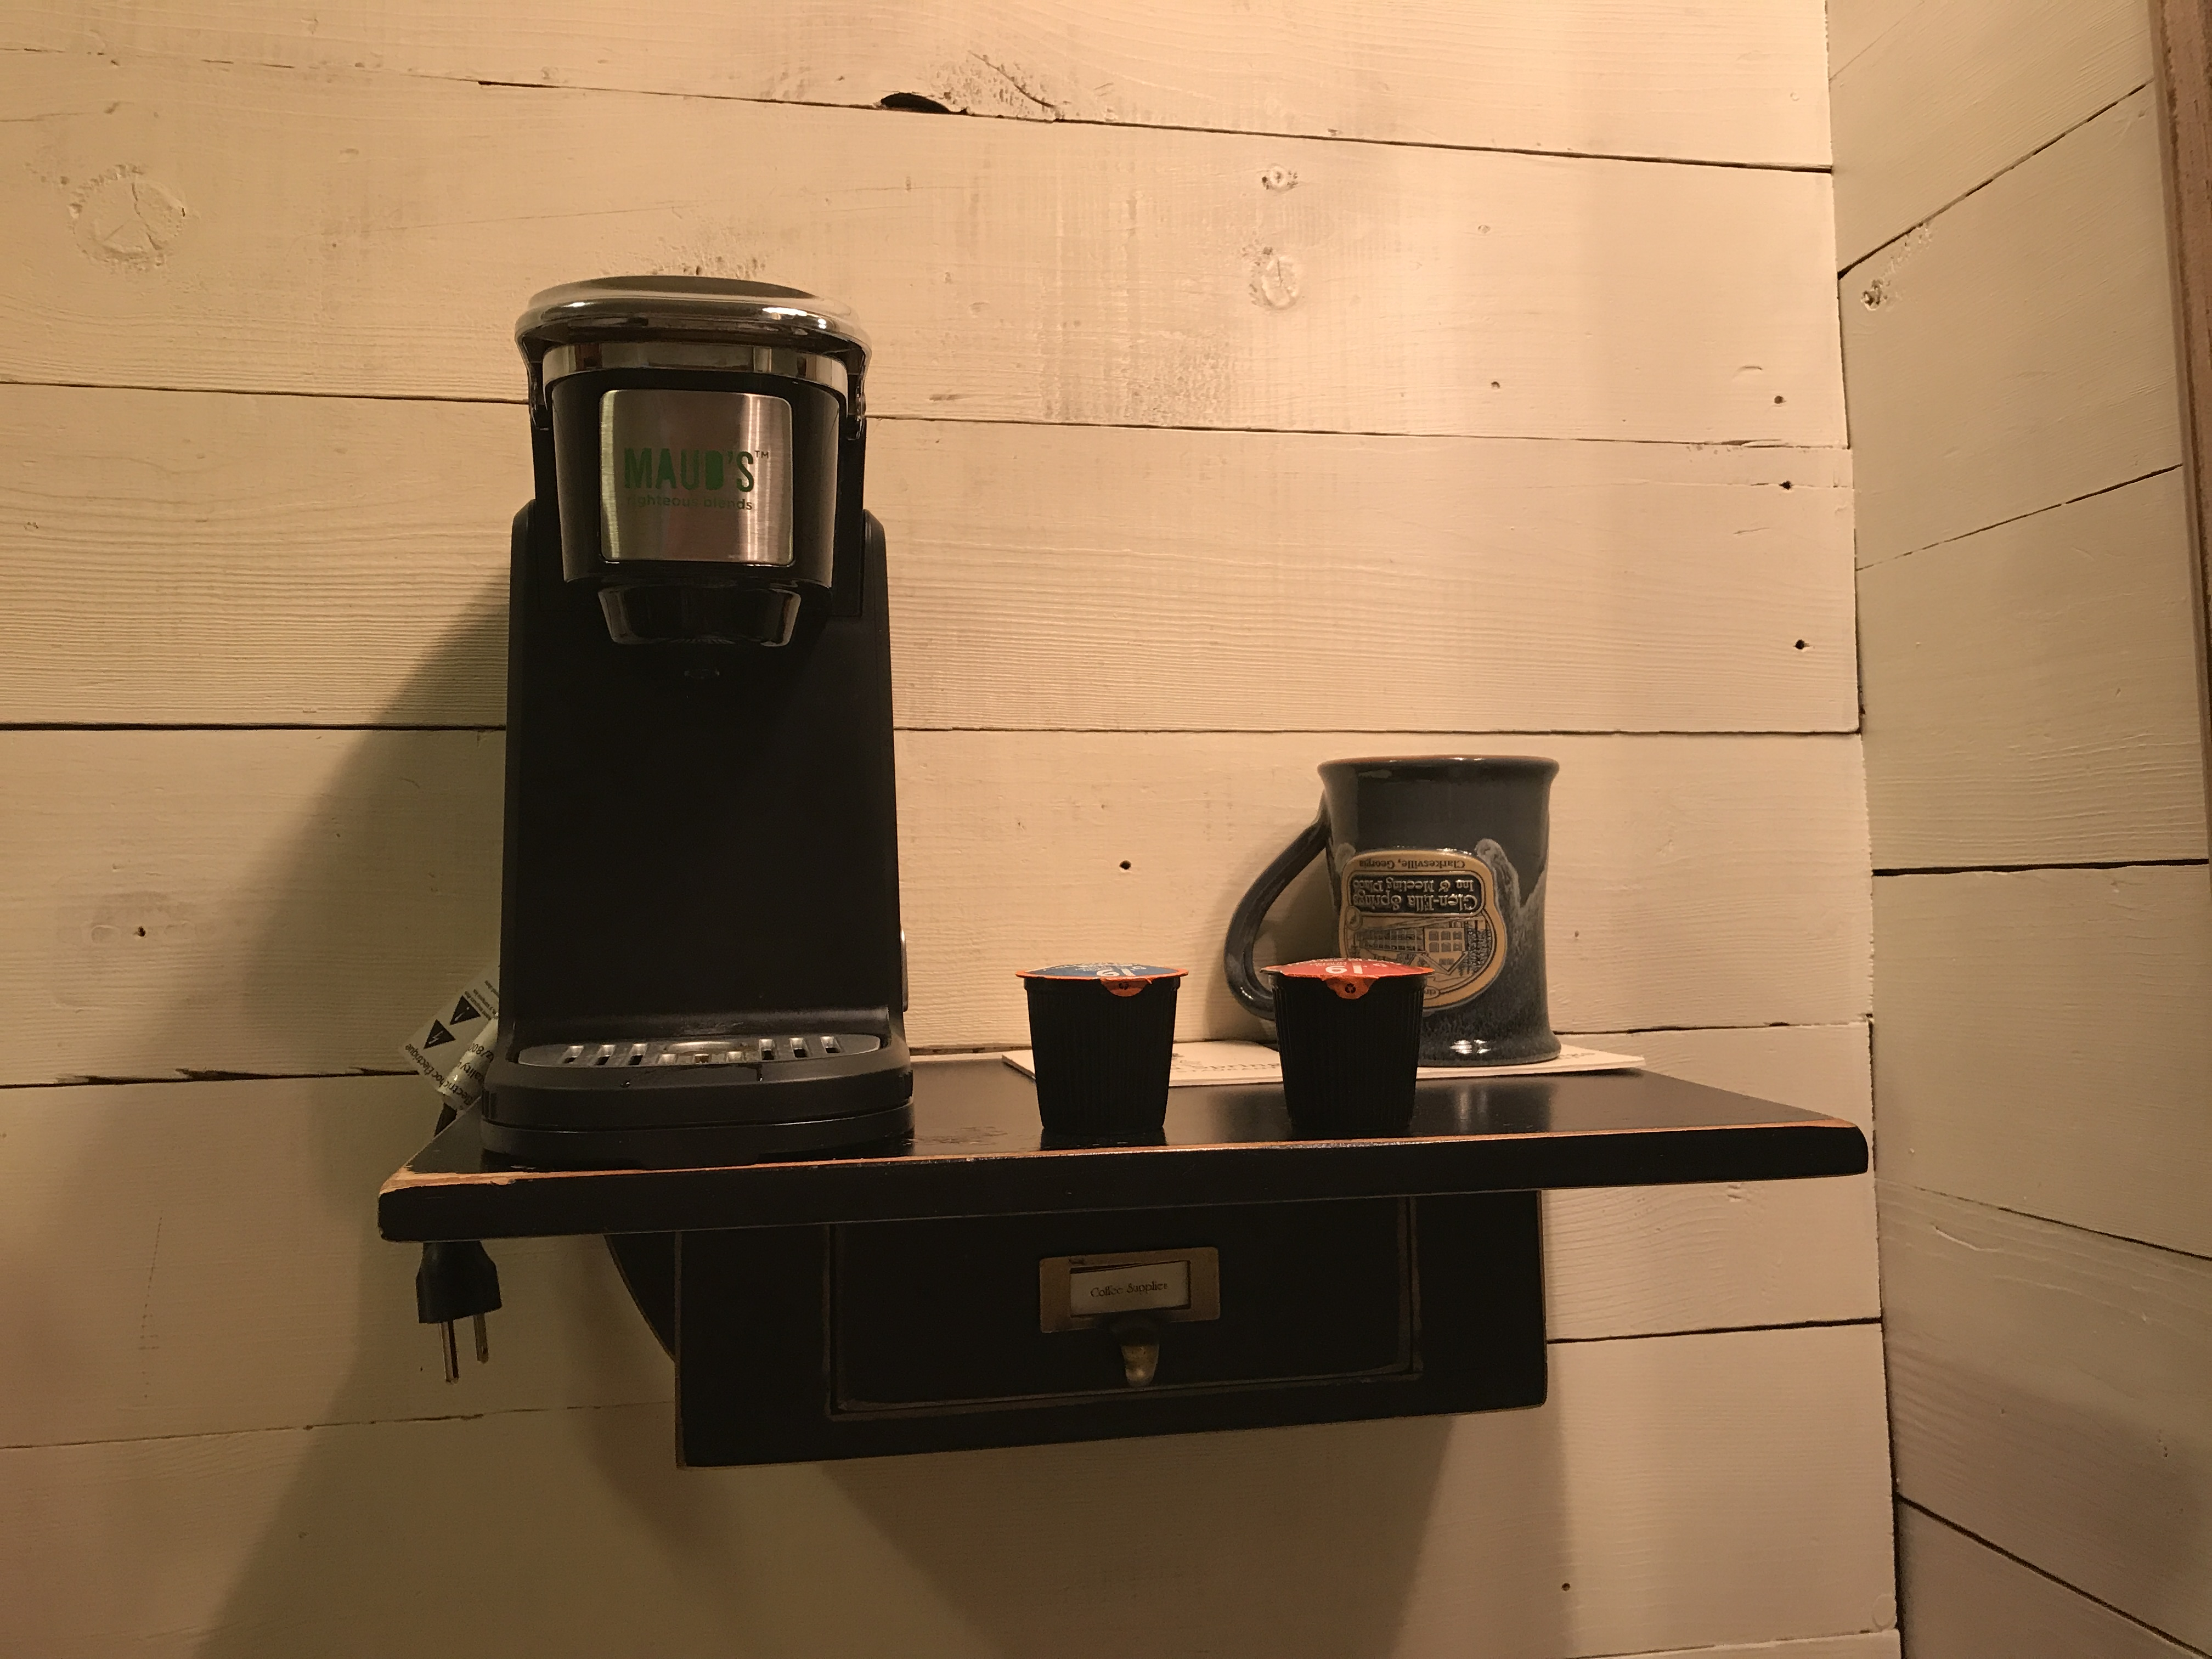 Tiny Craftsman Comes With Espresso Station: Great Small Space Coffee Station Option!